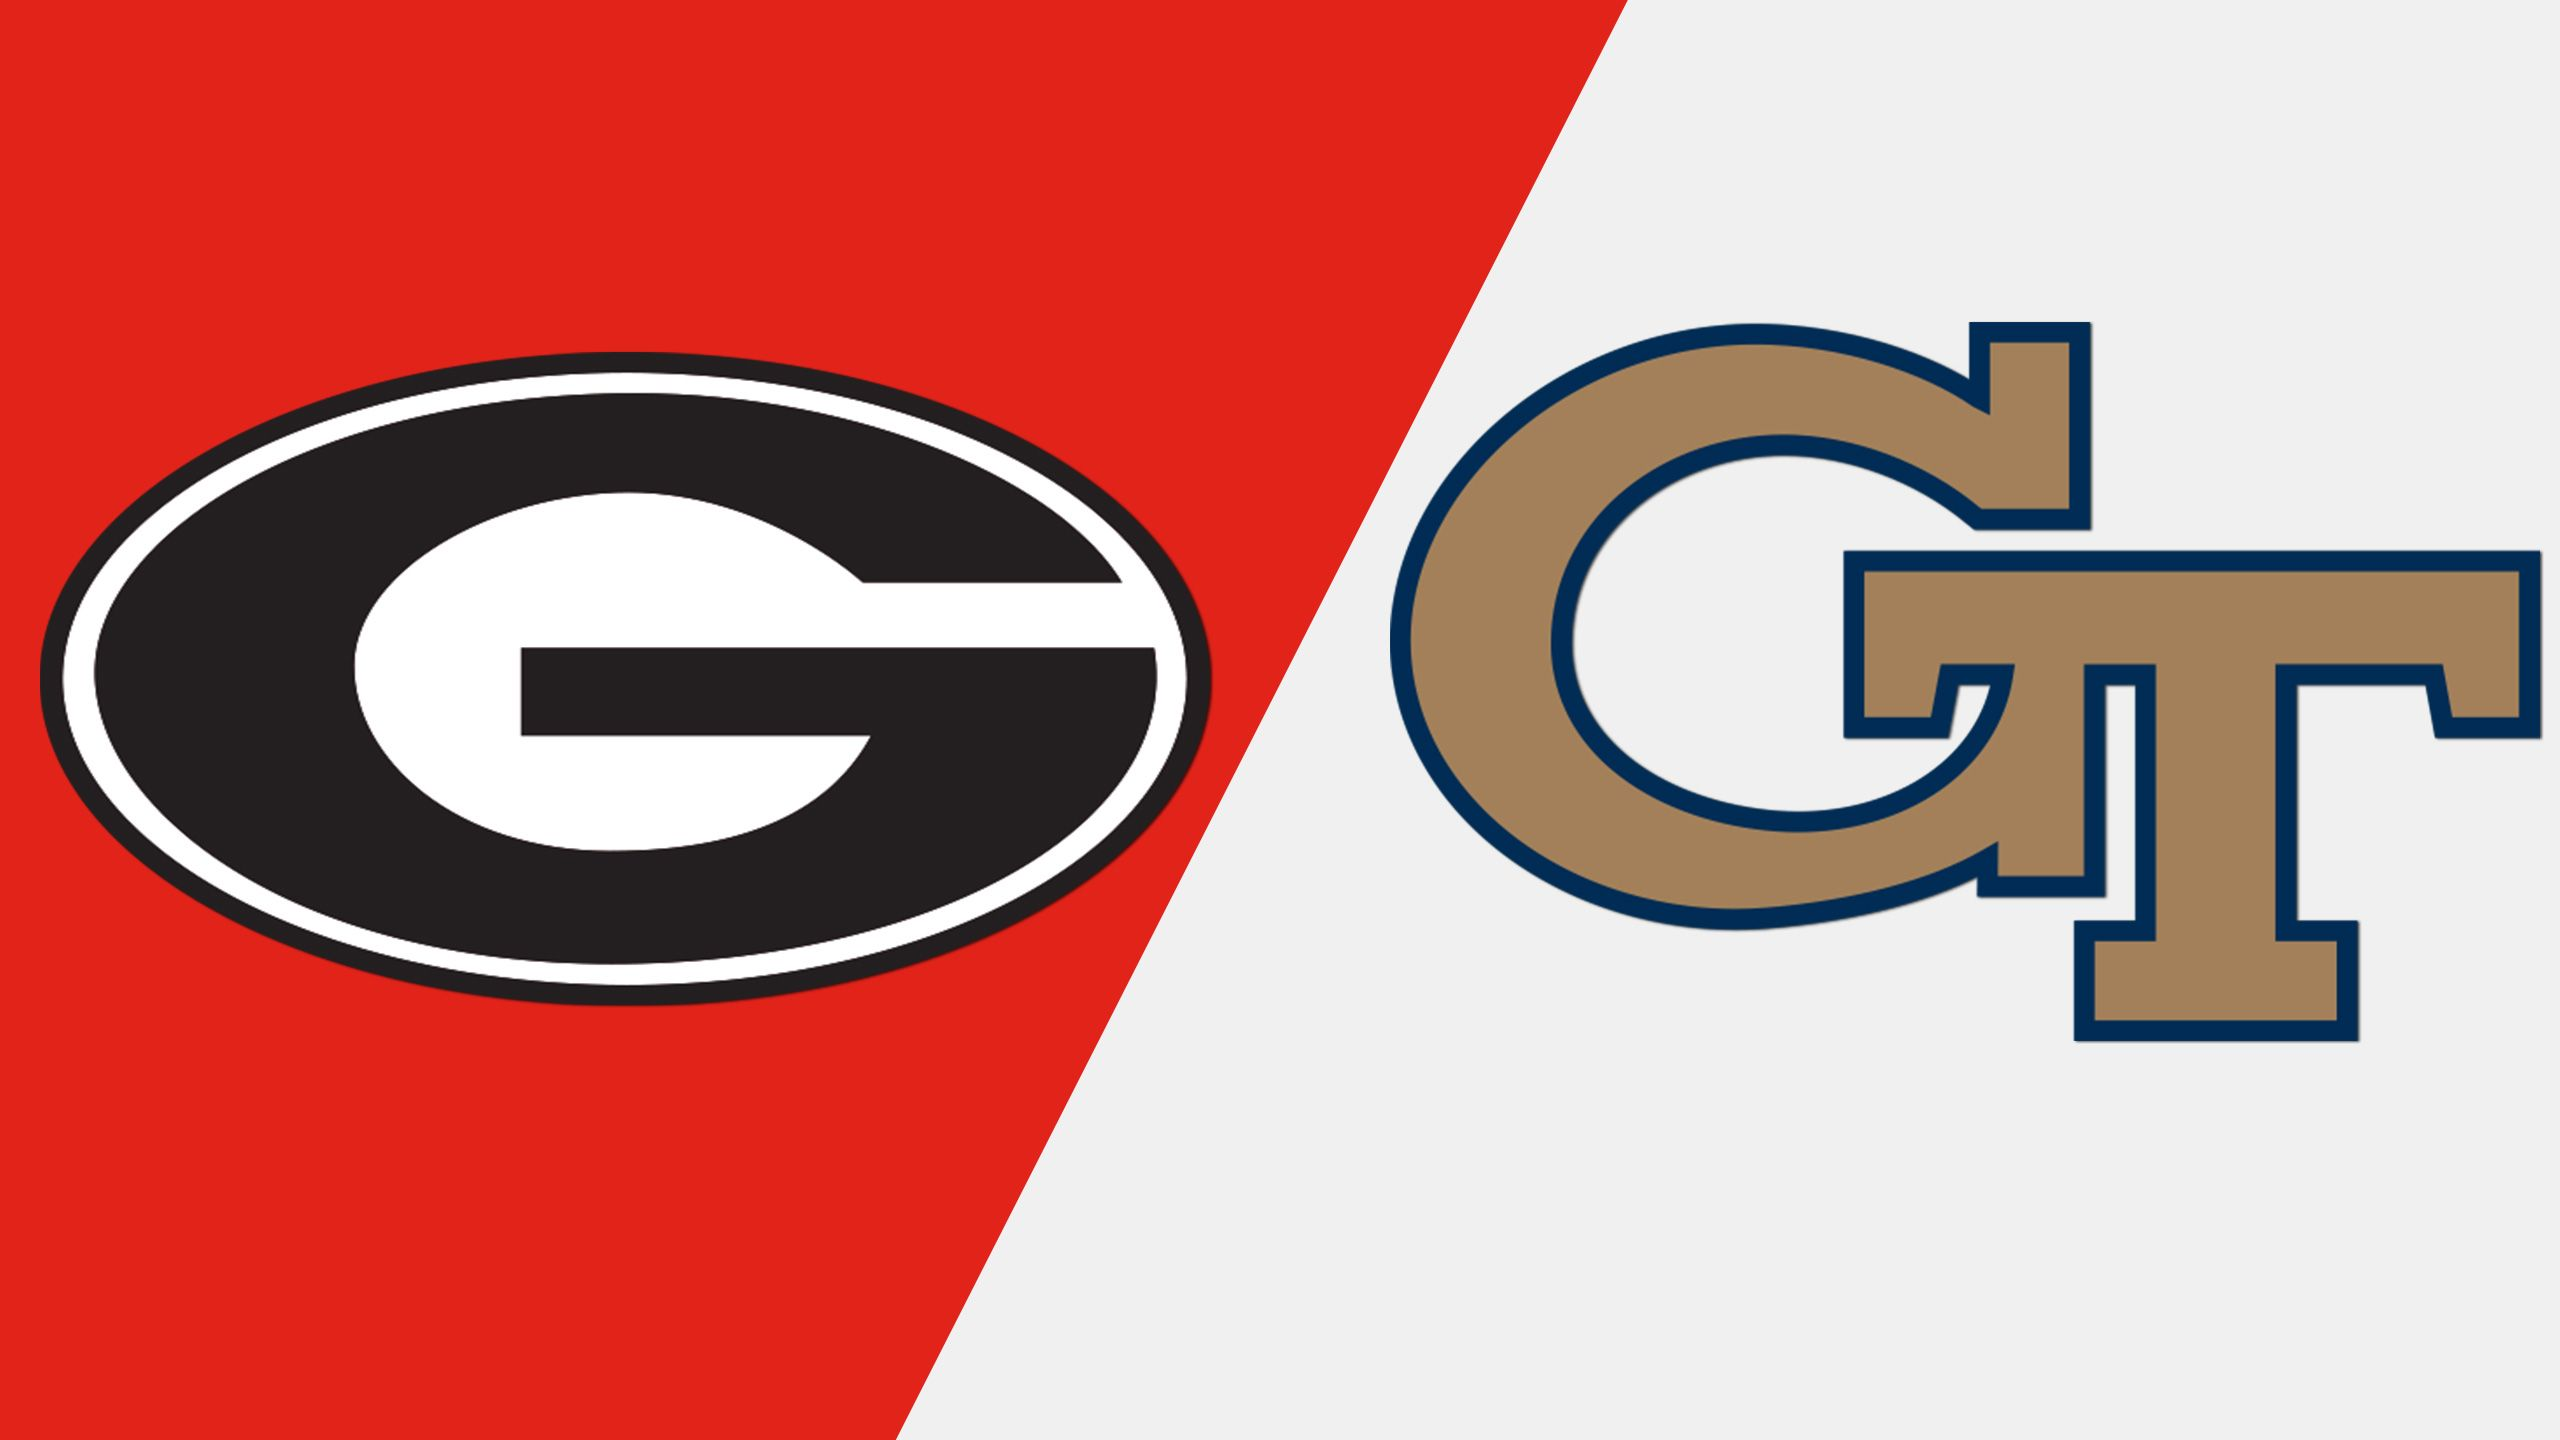 #20 Georgia vs. Georgia Tech (Baseball)